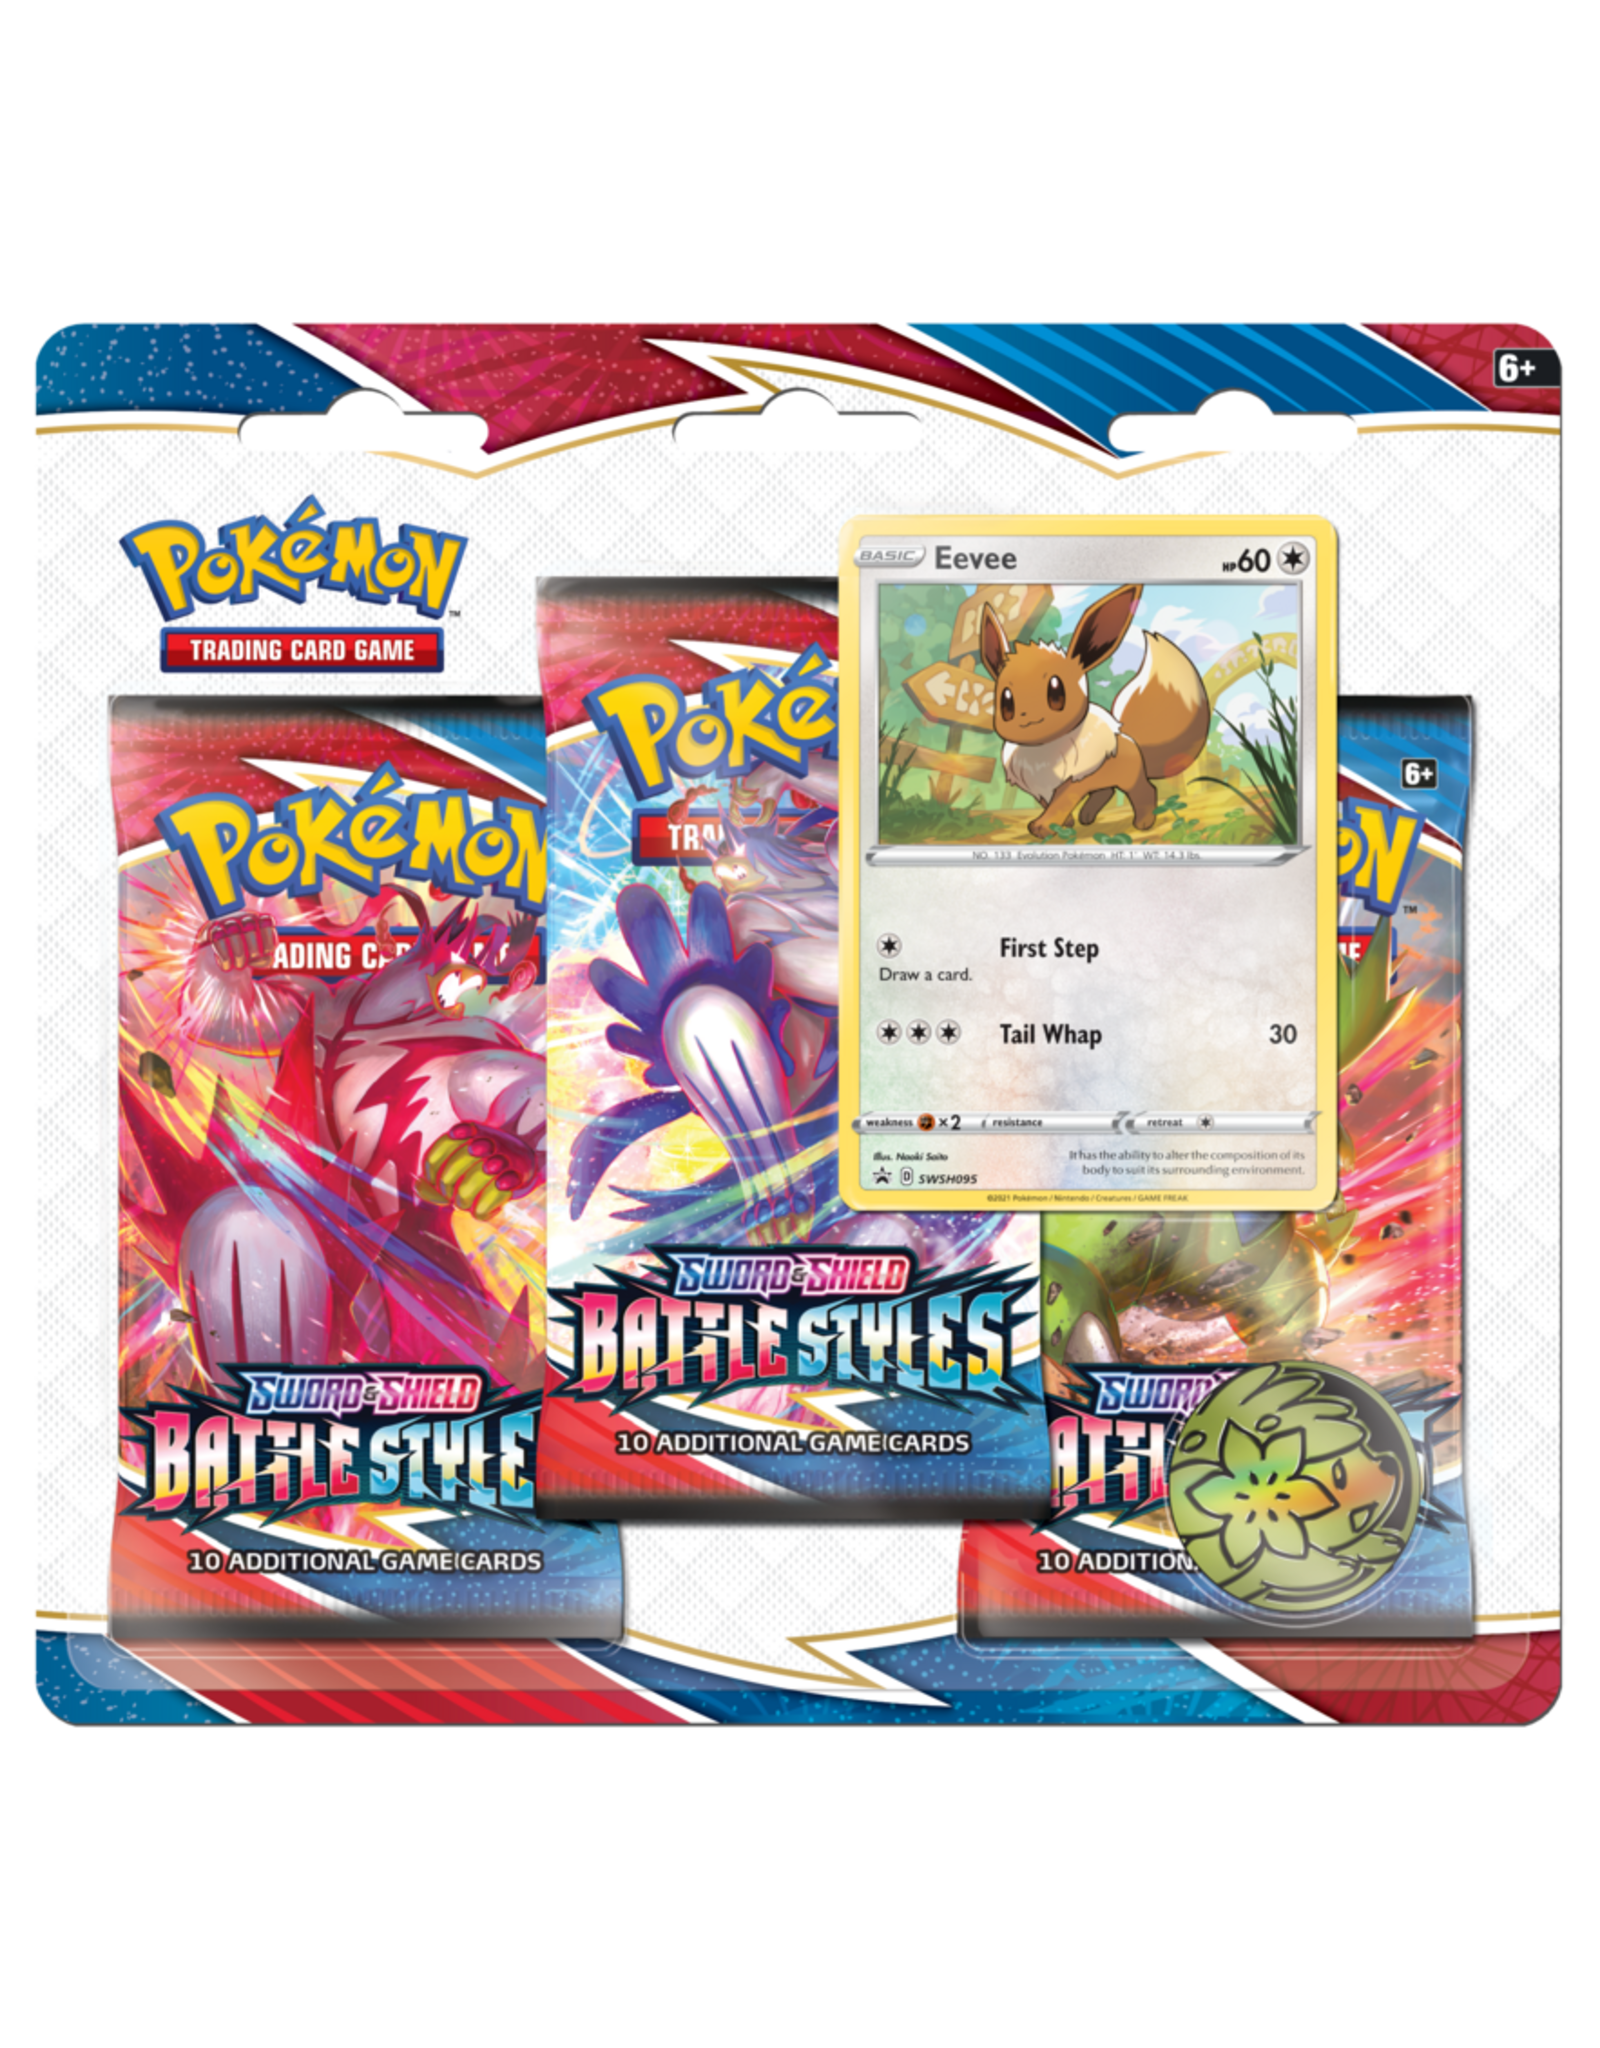 THE POKEMON COMPANY Sword & Shield: Battle Styles 3-Pack booster blister